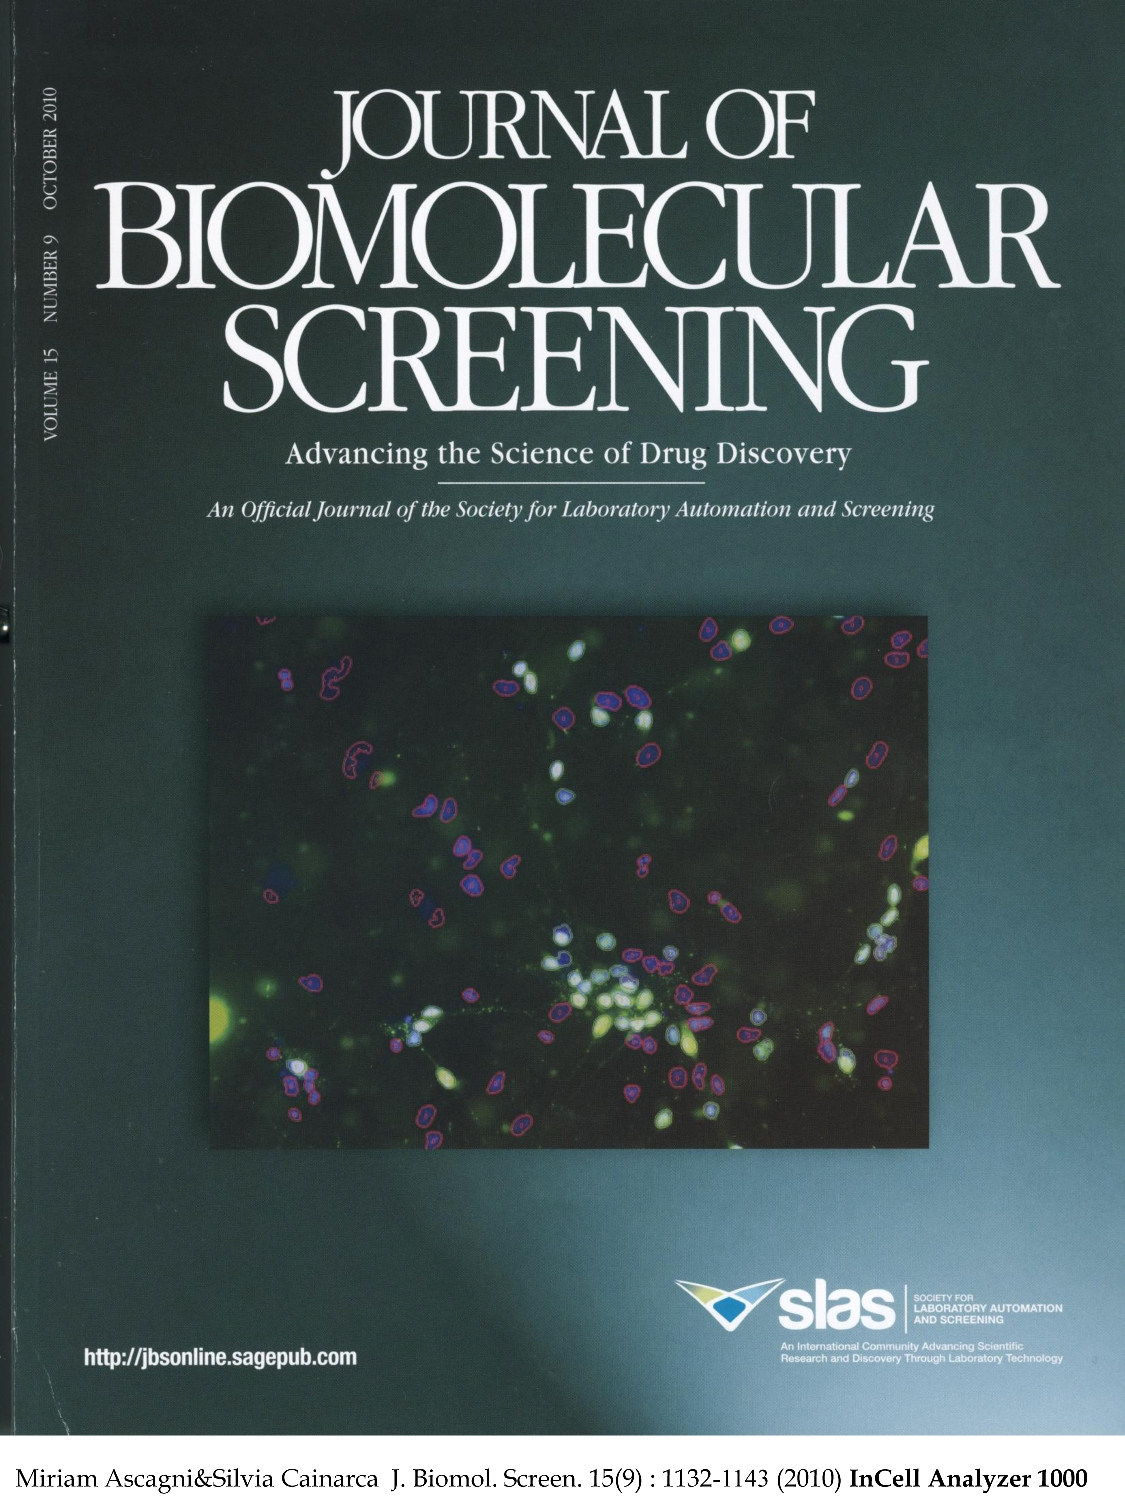 Journal of Biomolecular Screening